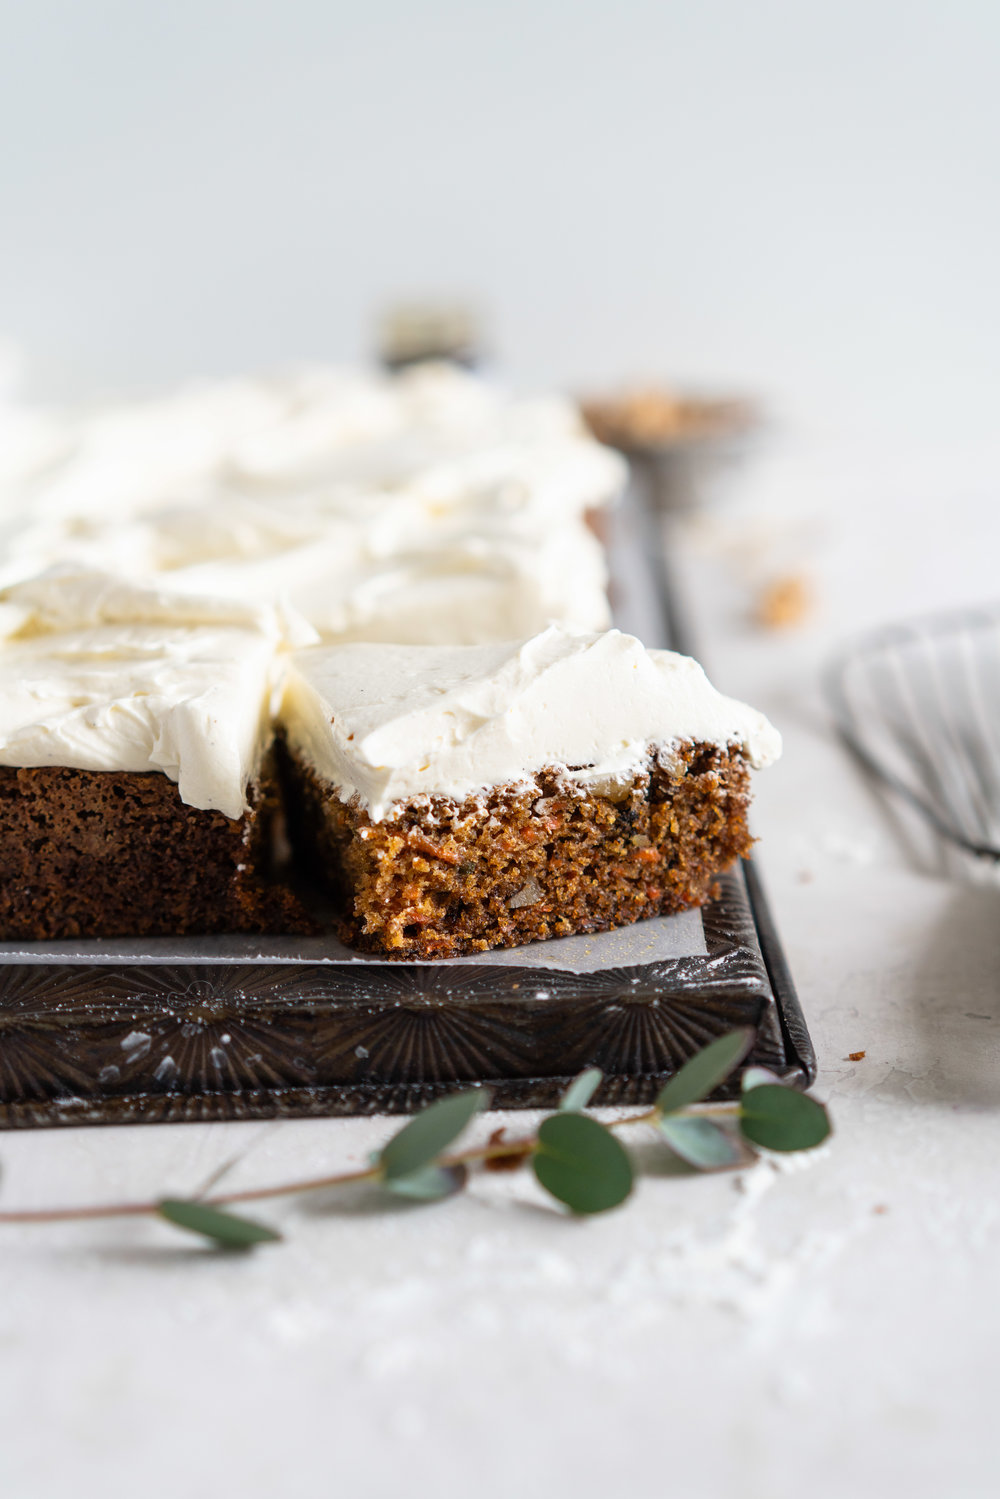 Brown Butter Carrot Sheet Cake is taken to the next level with a fluffy, whipped vanilla bean cream cheese german buttercream. This cake comes together super easily but is super delicious, and would make the perfect easter dessert. #brownbutter #carrotcake #sheetcake #germanbuttercream